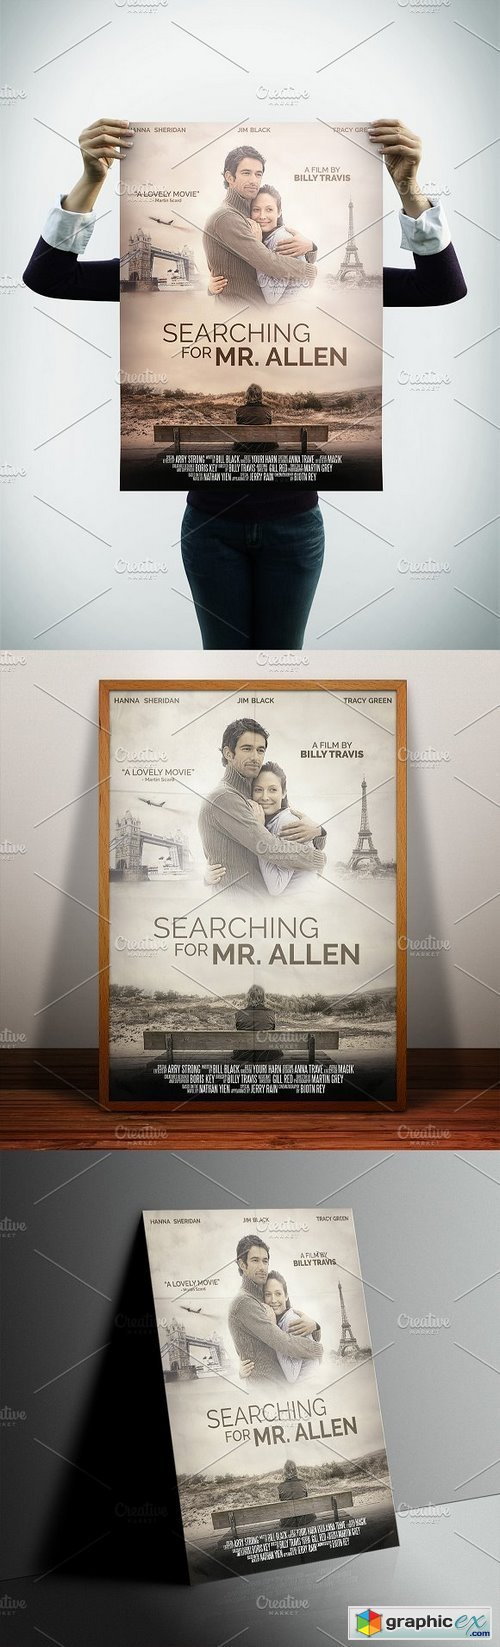 A3 - Movie Poster Print Template 1 » Free Download Vector Stock